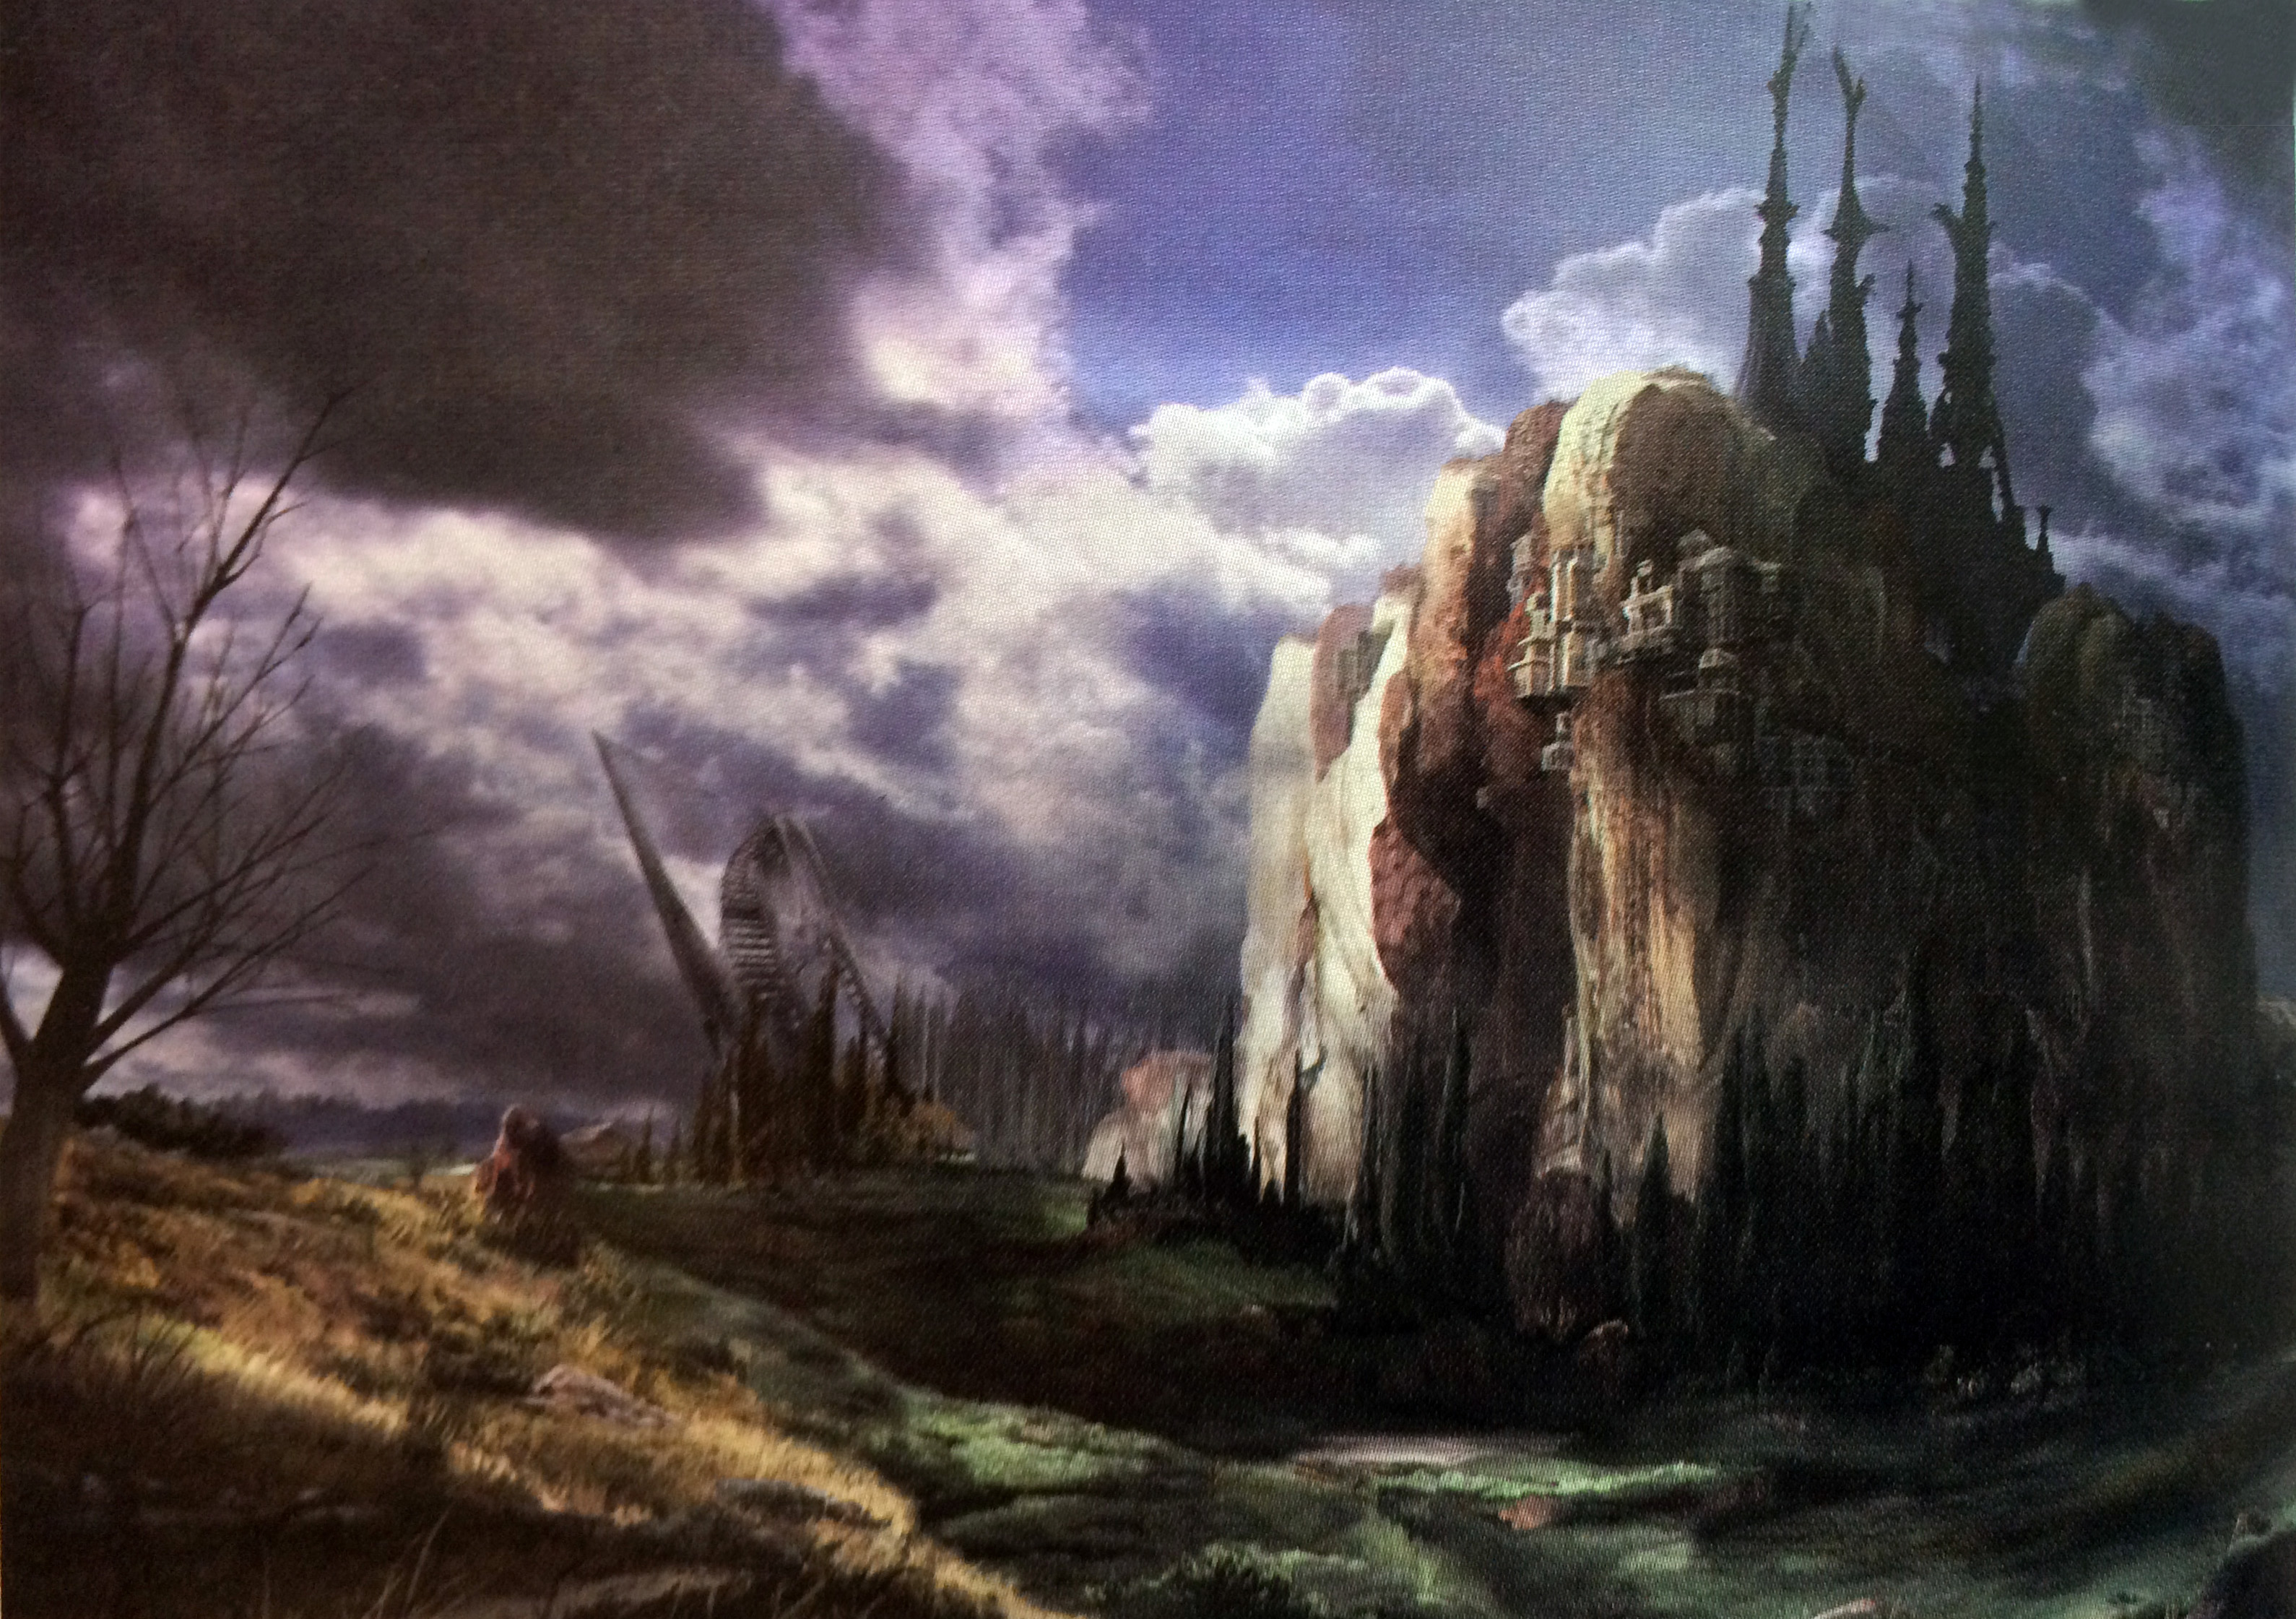 Temple of the Goddess (Final Fantasy XIII)